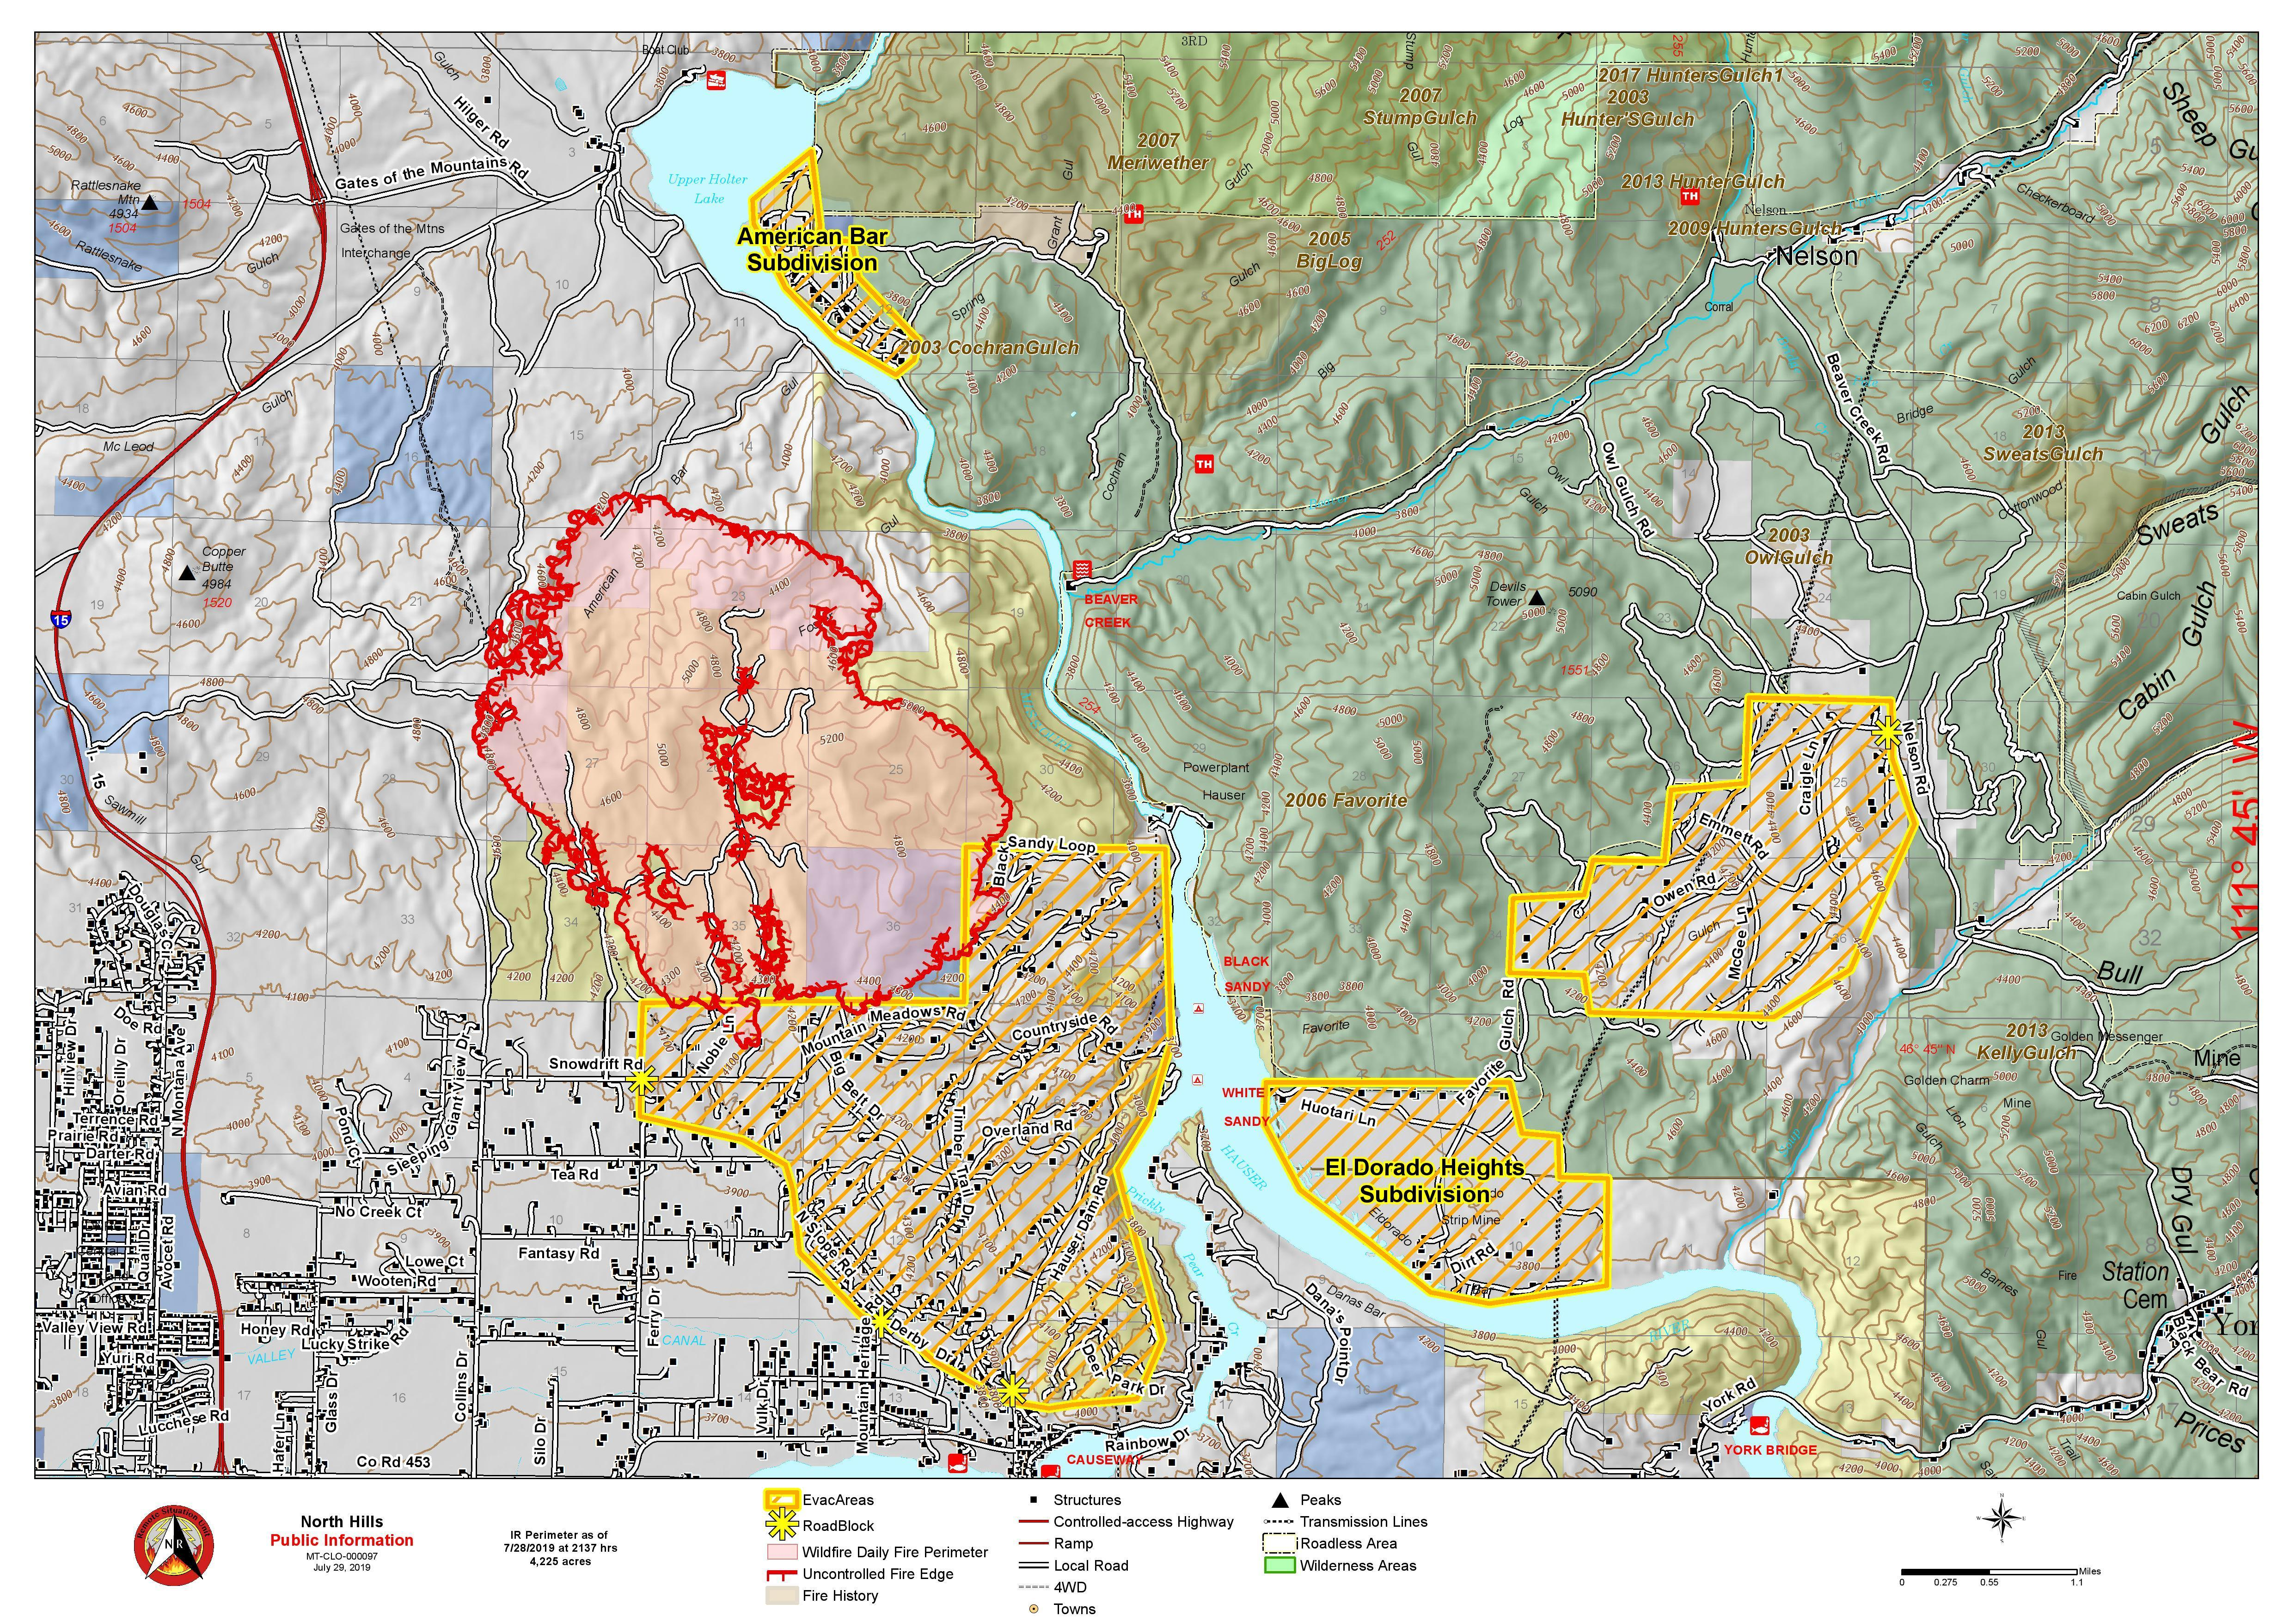 Fires In Montana Map Montana Wildfire Roundup For July 29, 2019 | MTPR